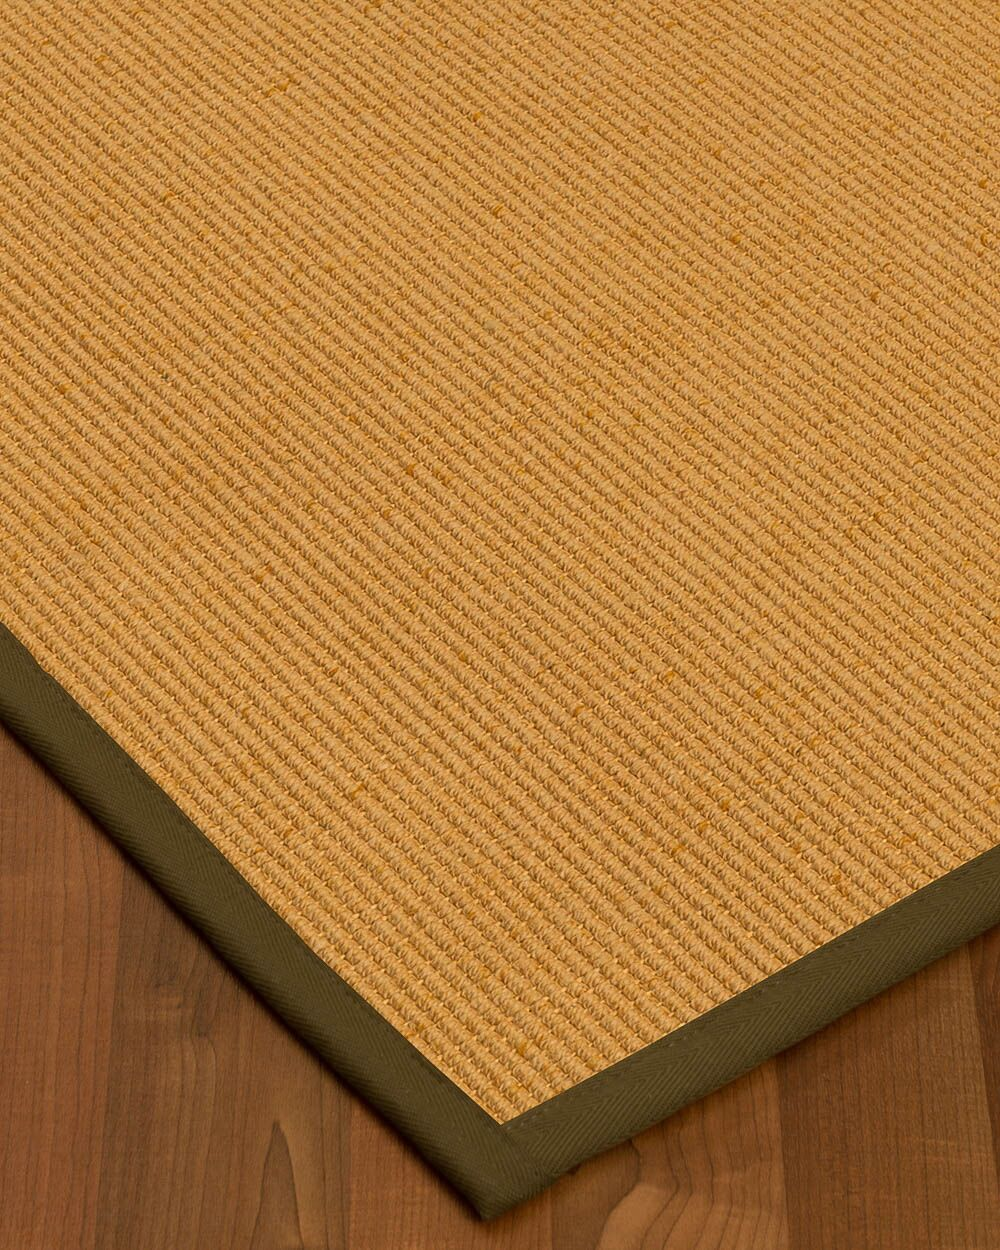 Vannatter Border Hand-Woven Beige/Malt Area Rug Rug Size: Rectangle 12' x 15', Rug Pad Included: Yes